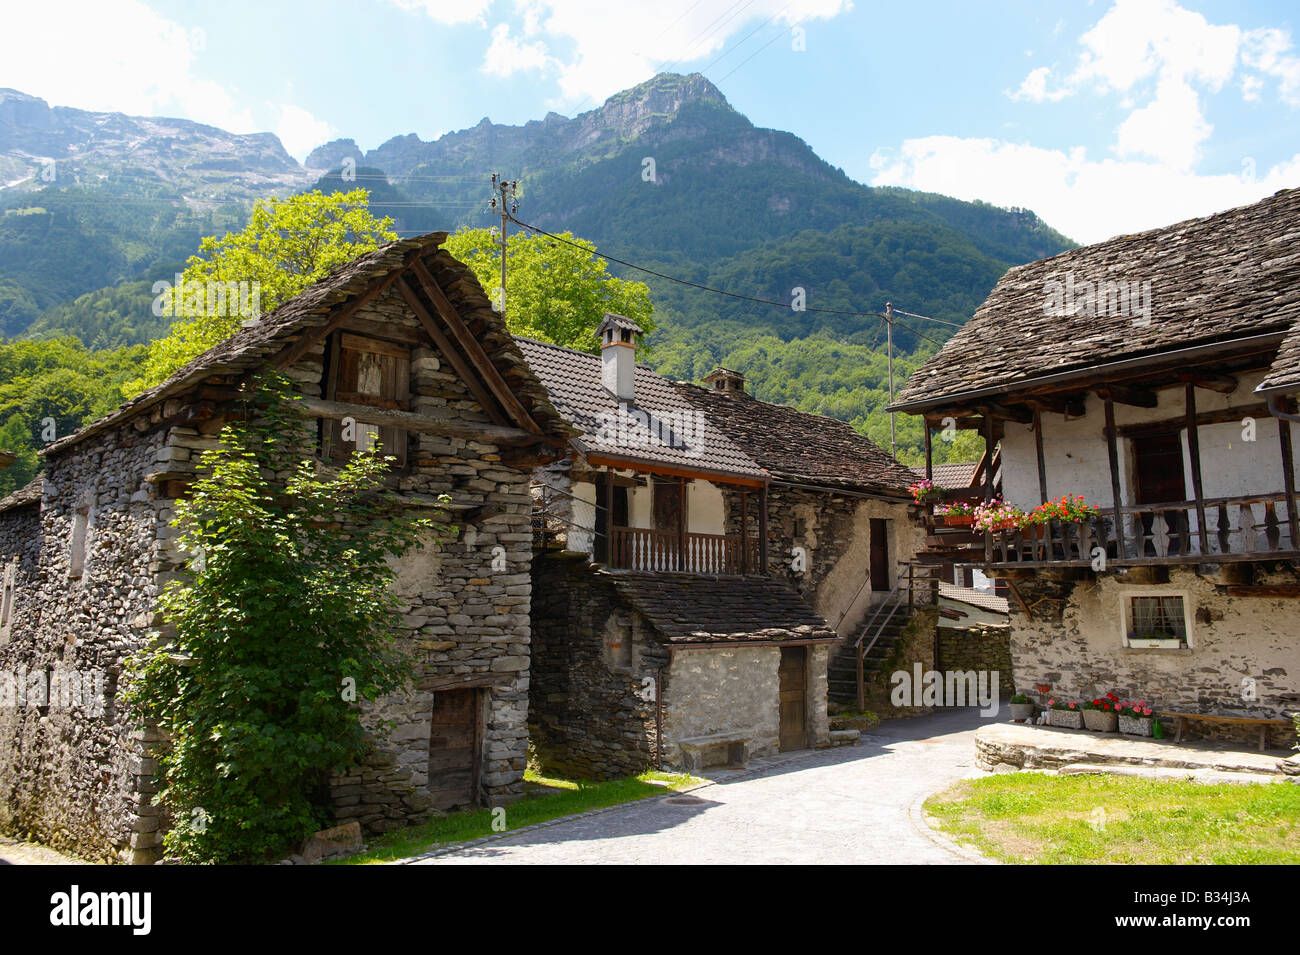 traditional-stone-farm-houses-costar-val-verzasca-tocino-swiss-alps-B34J3A.jpg